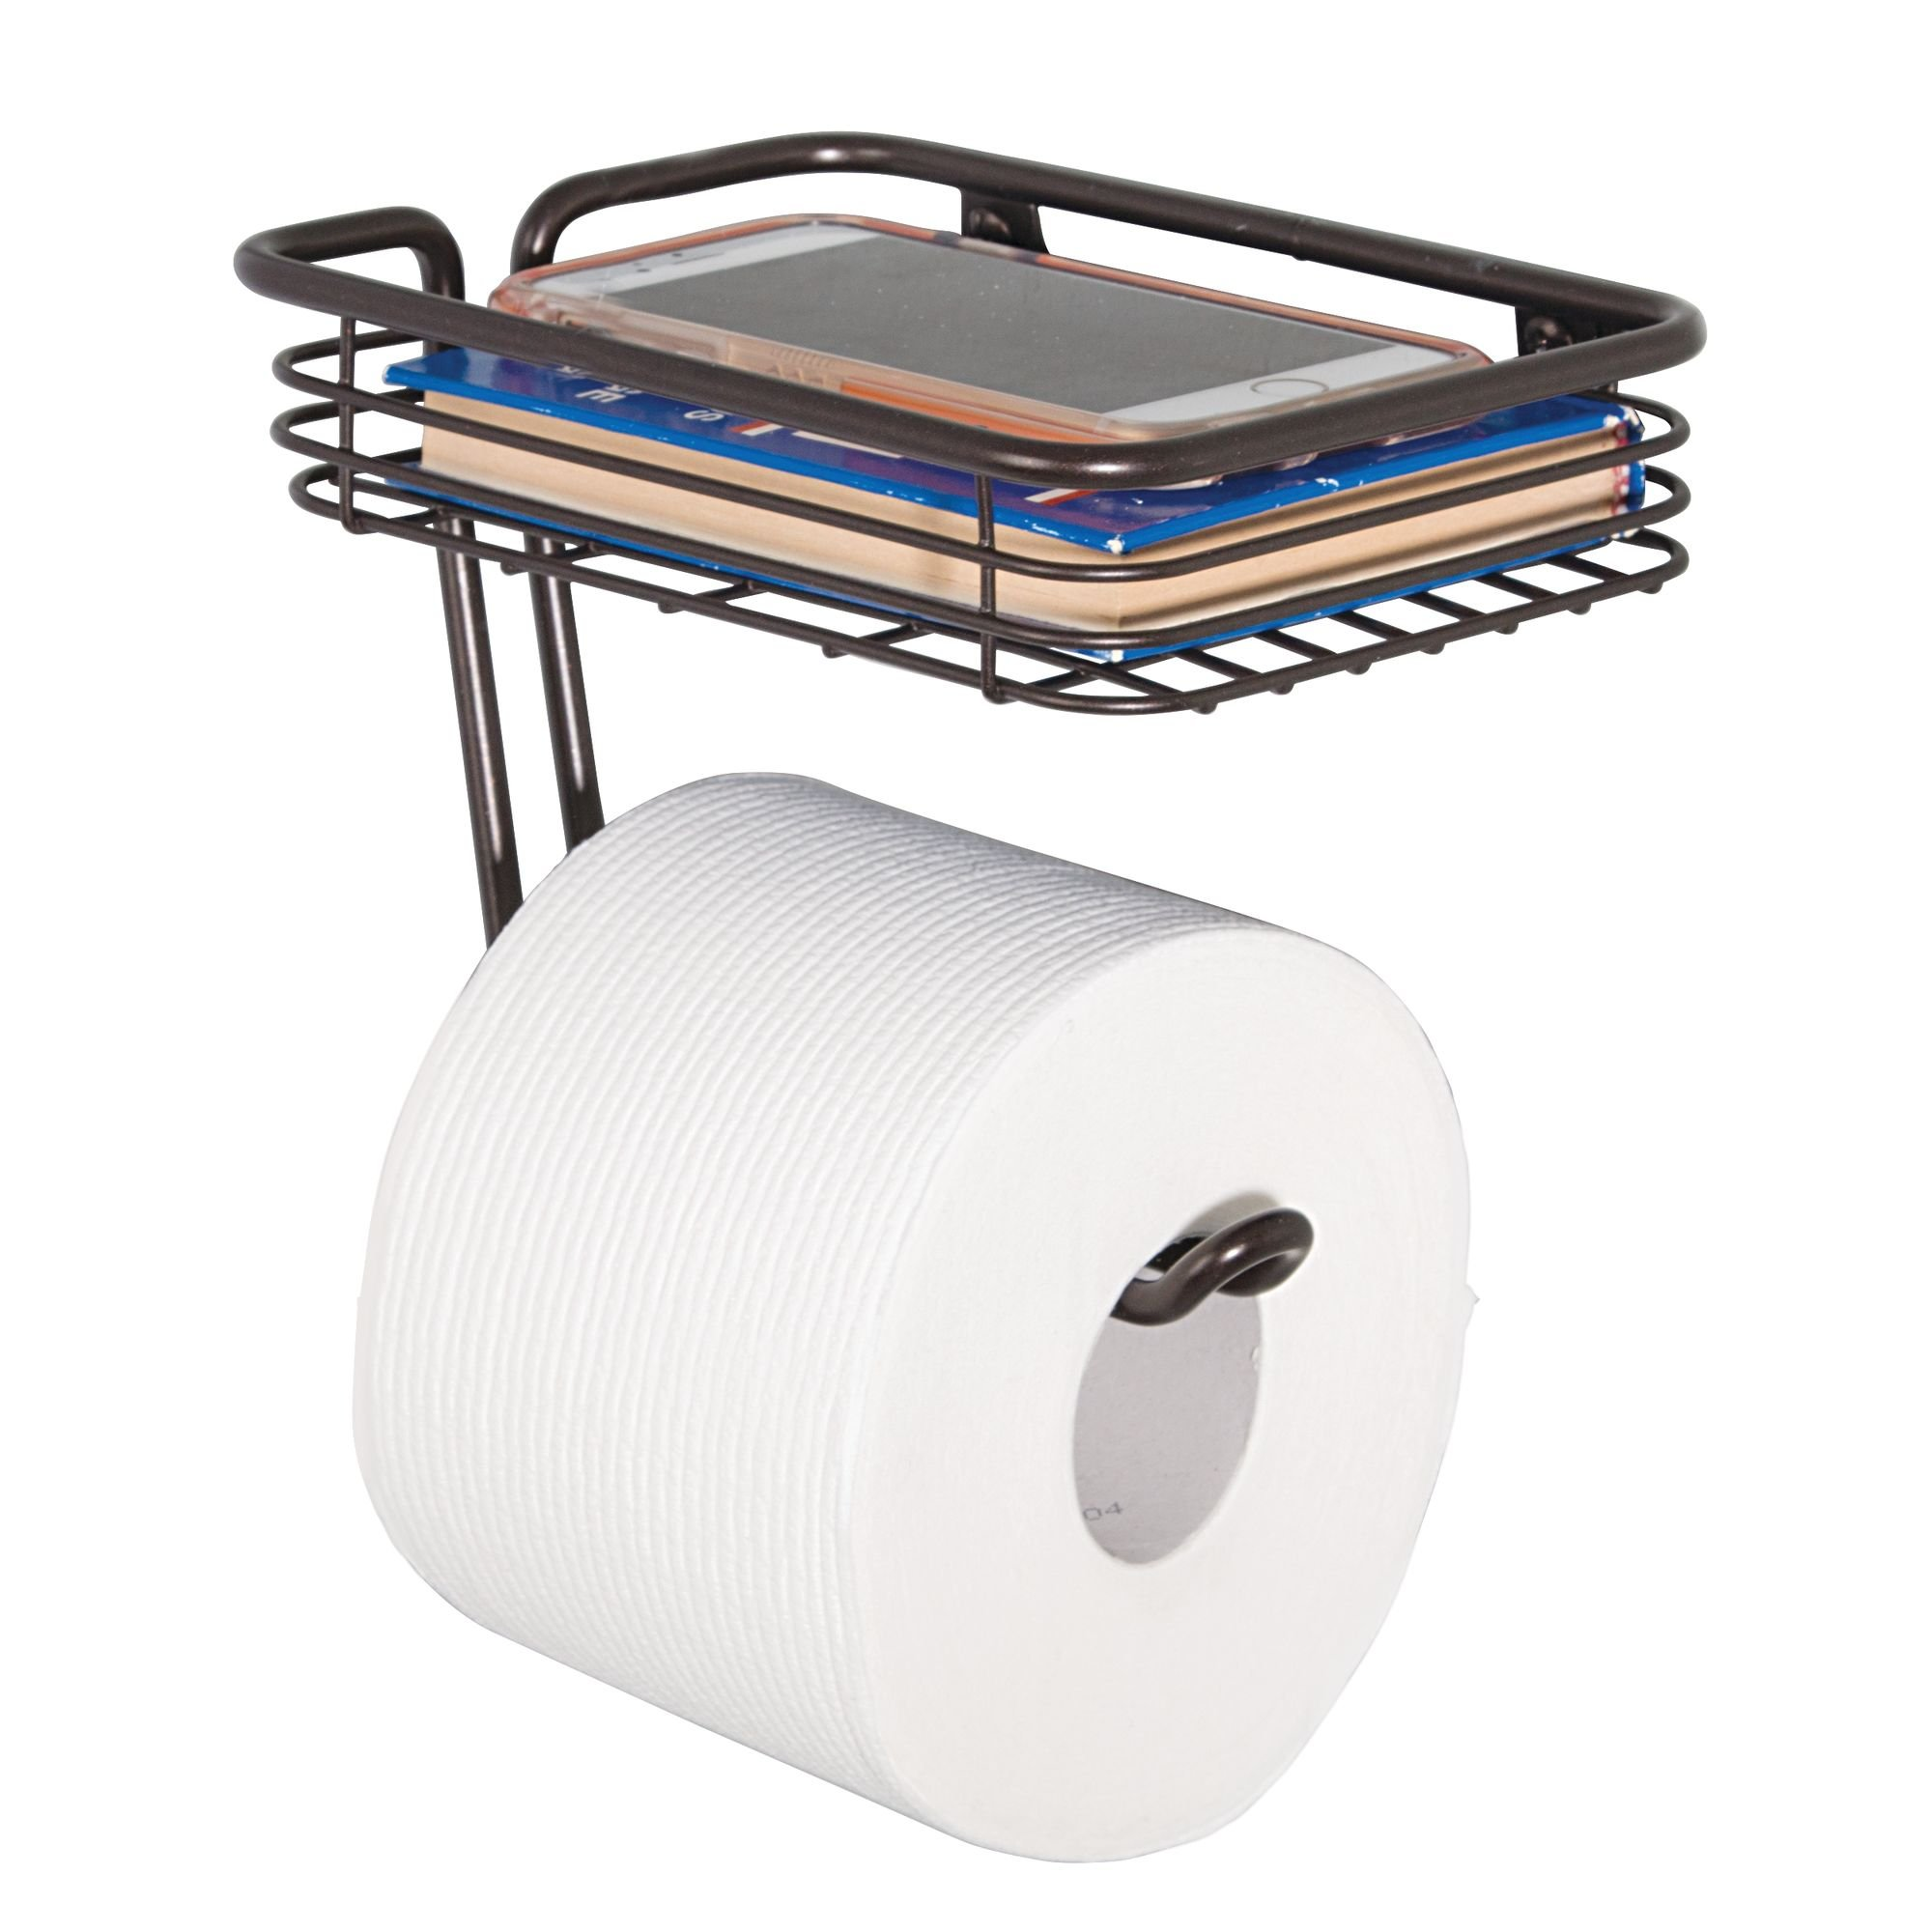 """iDesign Classico Metal Wall Mount Toilet Paper Tissue Holder, Roll Reserve with Shelf for Kids', Guest, Master, Office Bathroom, 7.25"""" x 5.25"""" x 5.25"""", Bronze"""